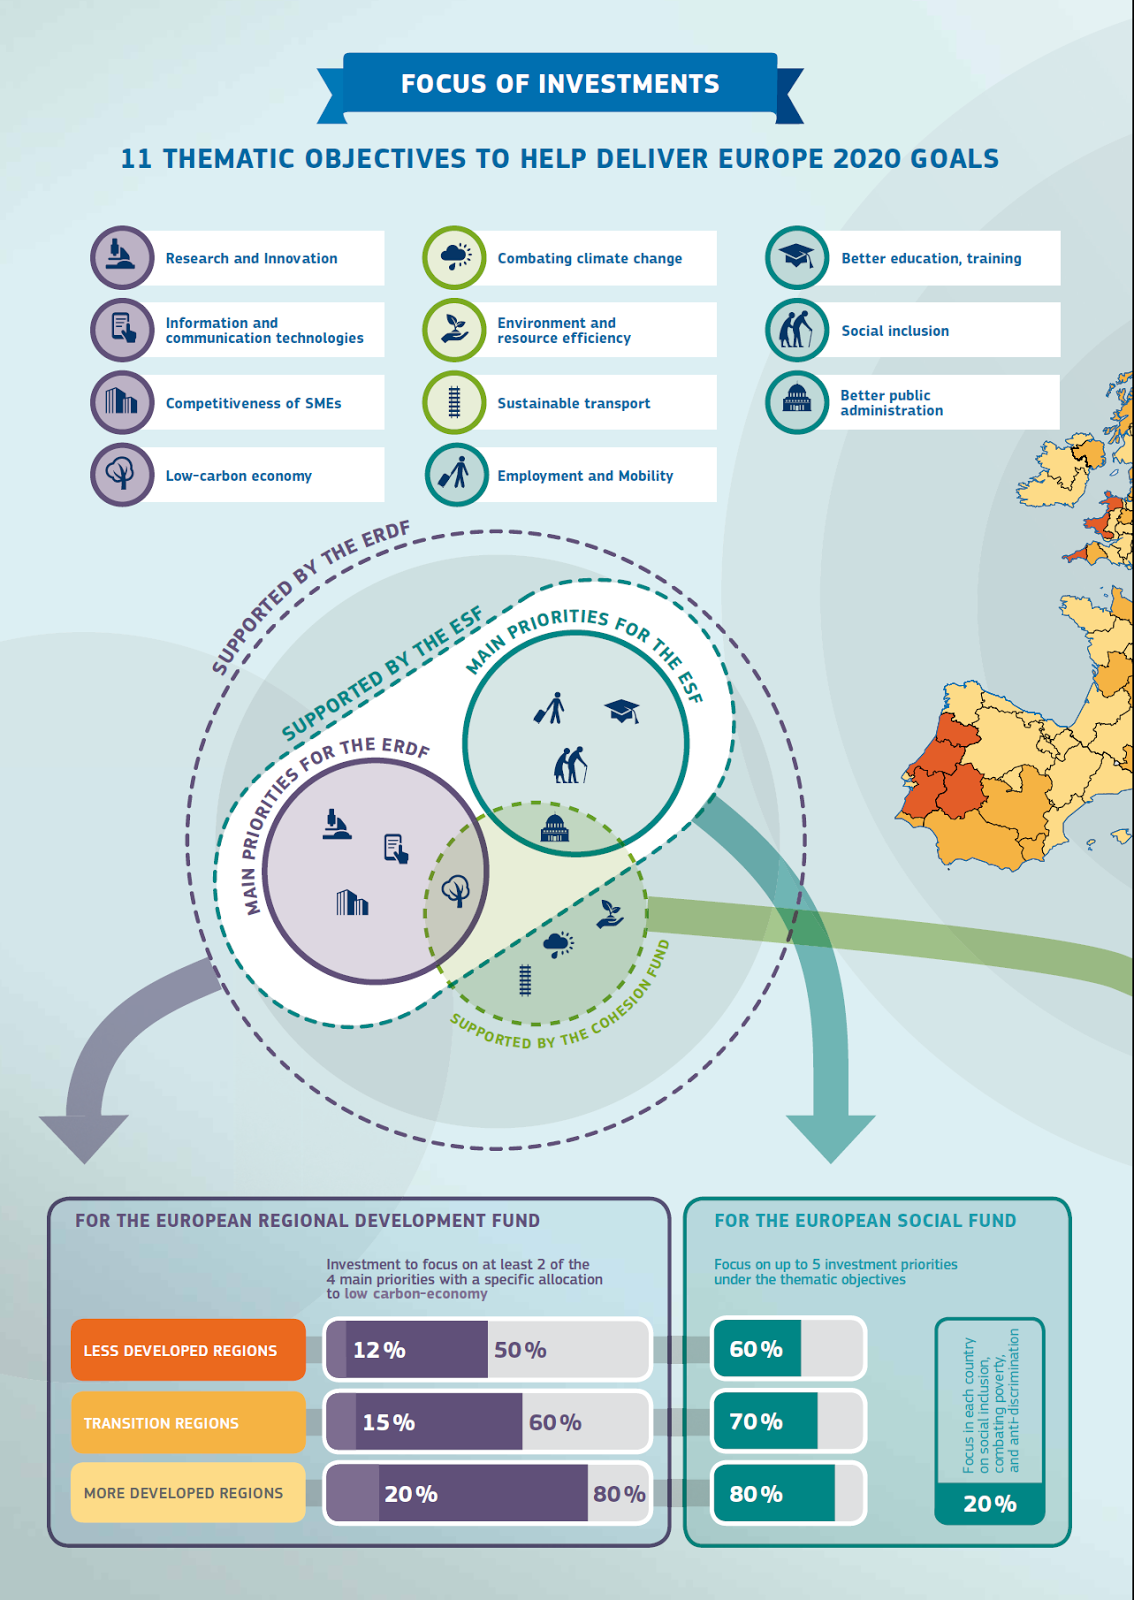 Cohesion policy 2014-2020: 11 THEMATIC OBJECTIVES TO HELP DELIVER EUROPE 2020 GOALS